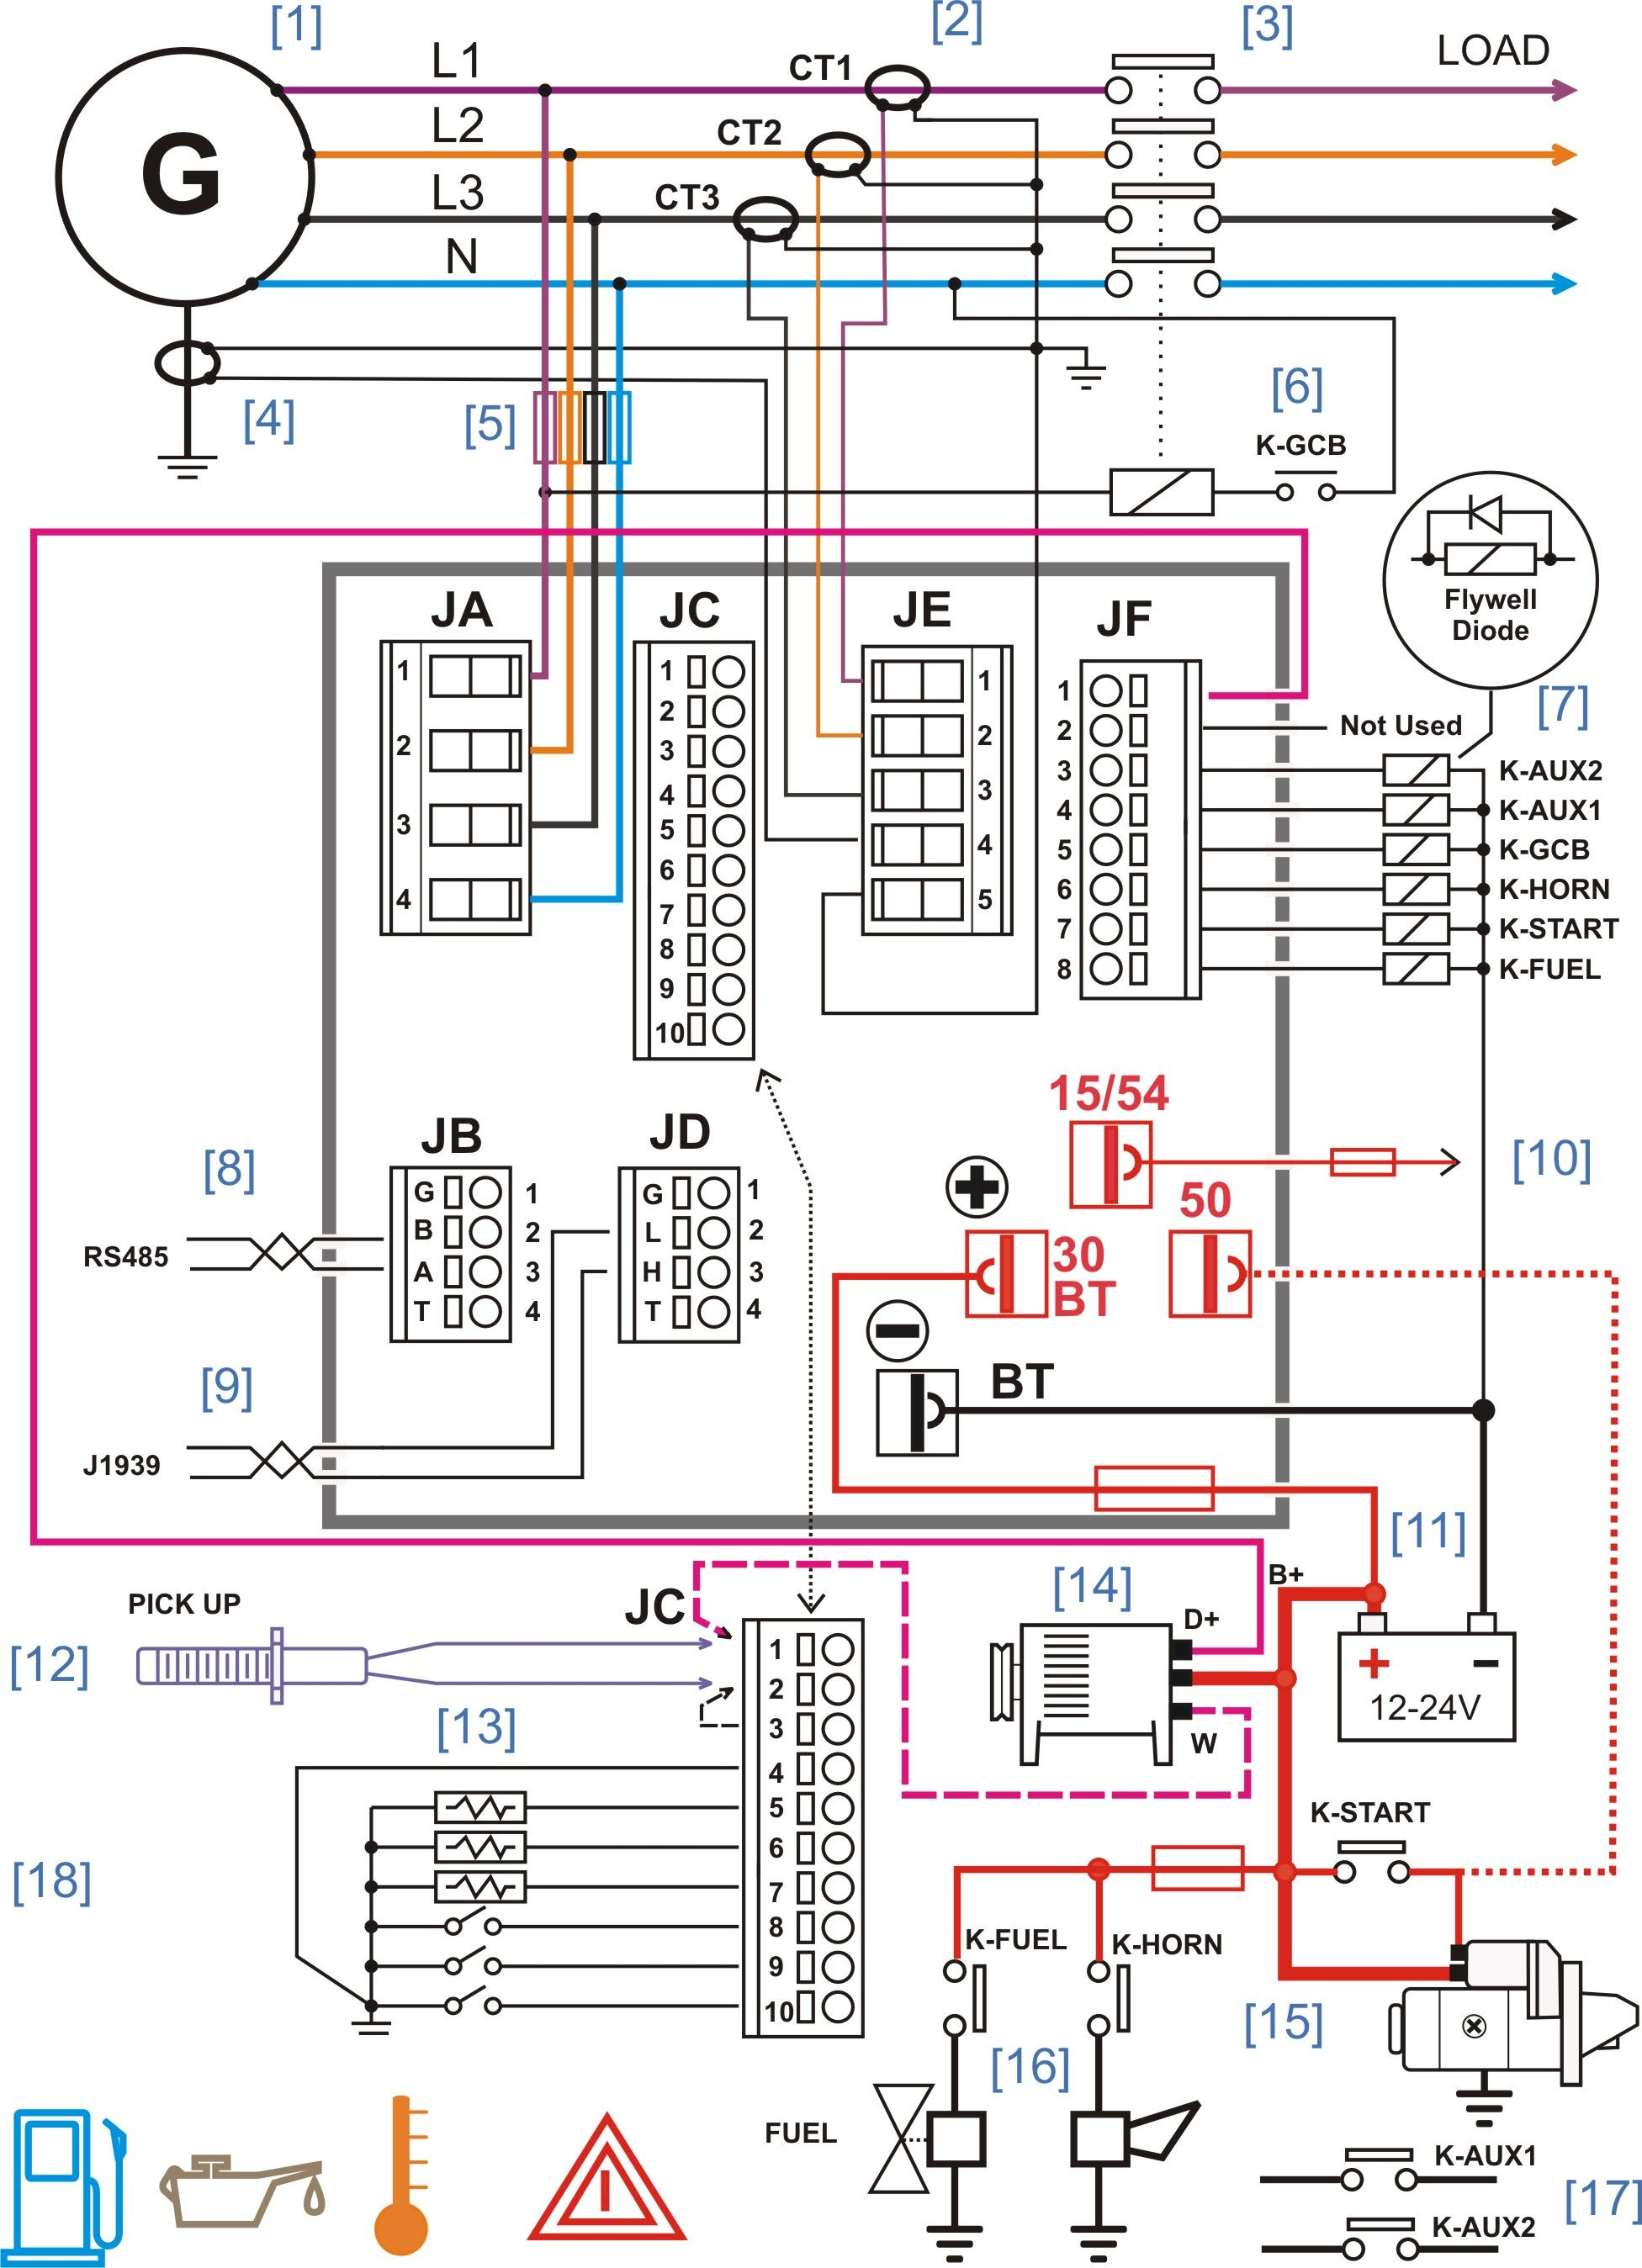 hight resolution of pump panel wiring diagram wiring diagram forward booster pump control panel wiring diagram pump control box